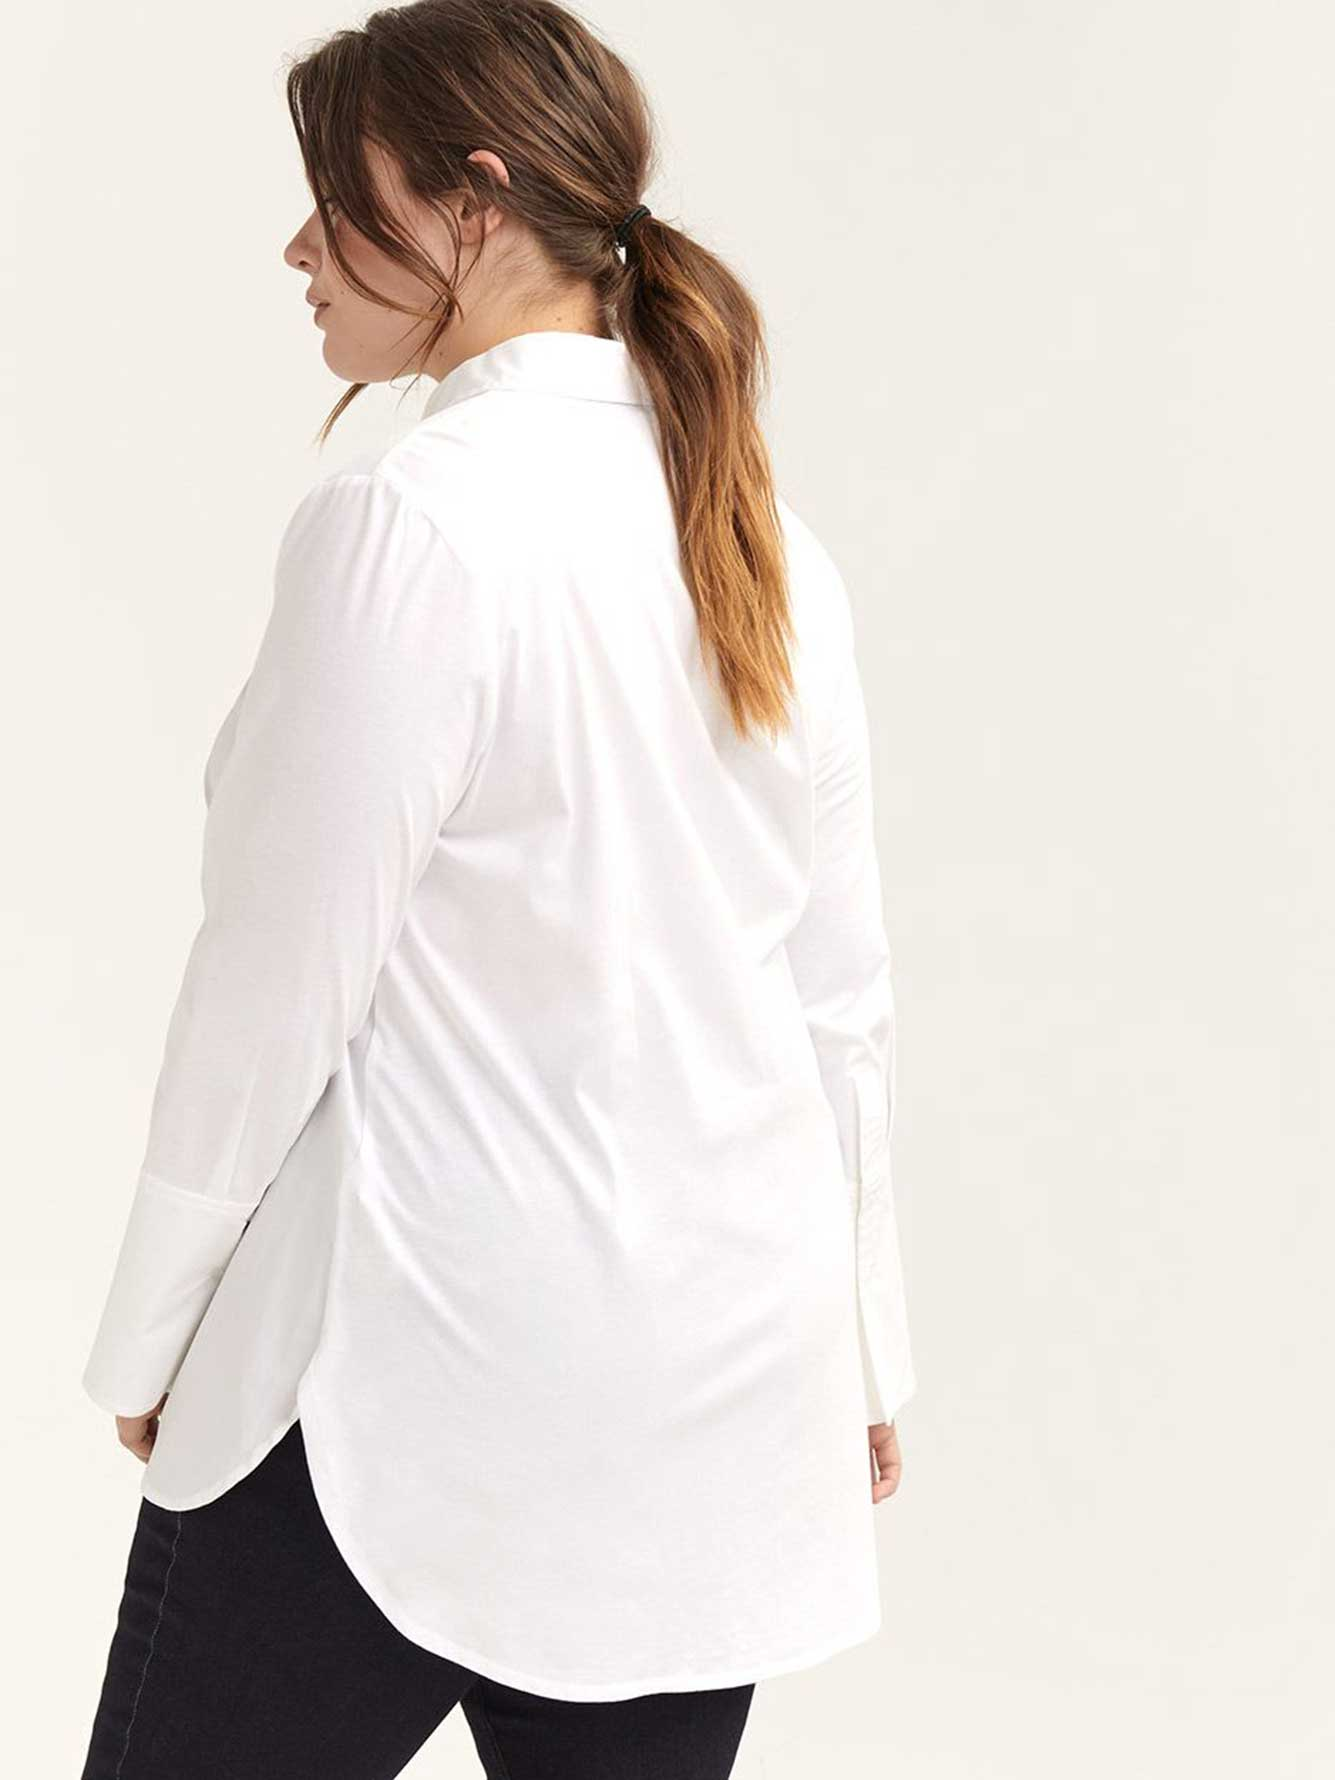 Button-Down Mixed Media Shirt Blouse - L&L